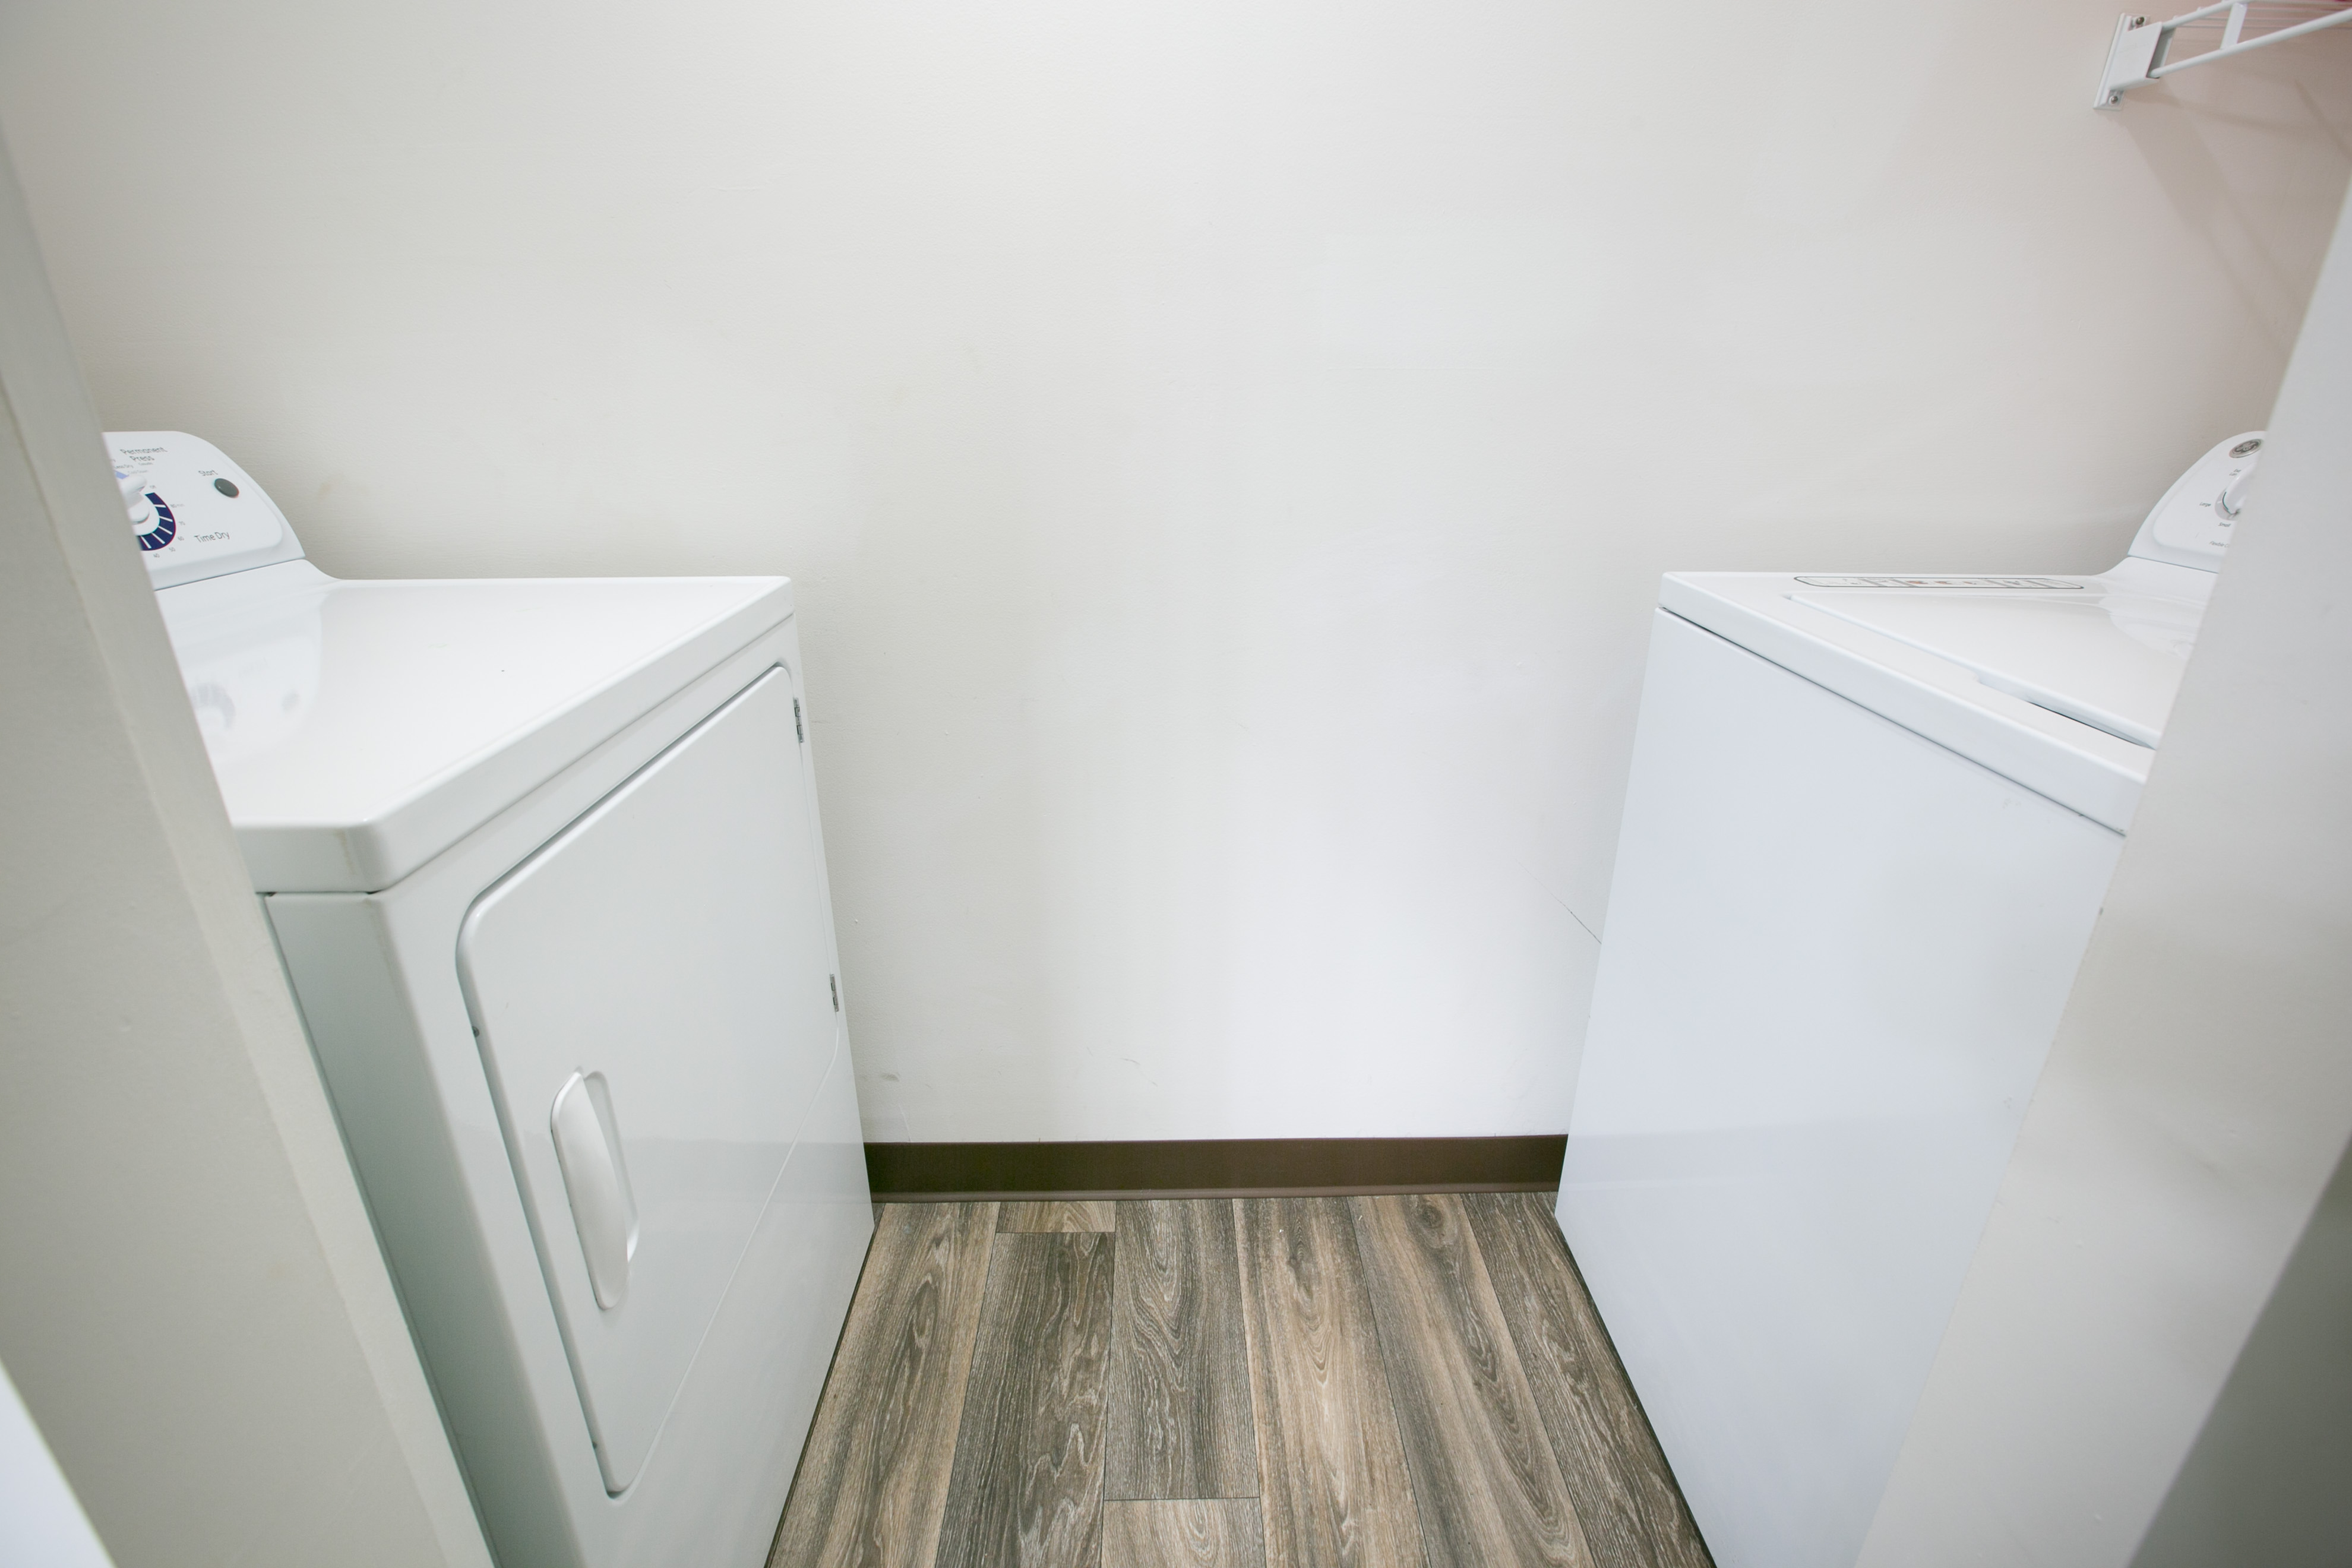 Built in washer and dryer hook ups in each apartment at The Village of Western Reserve Apartments in Streetsboro, OH